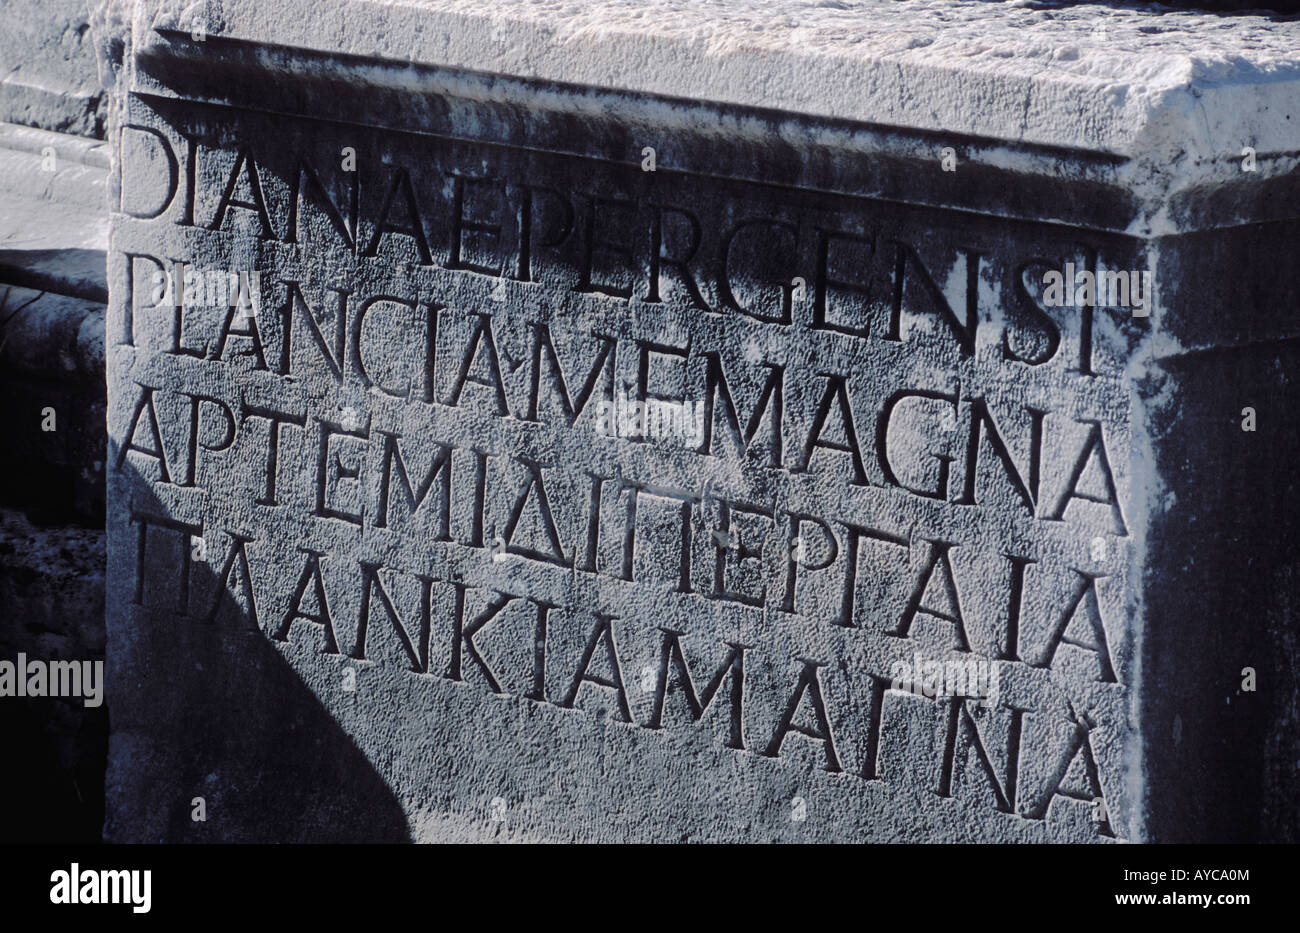 Ancient Script found on ruins at Perge Turkey - Stock Image